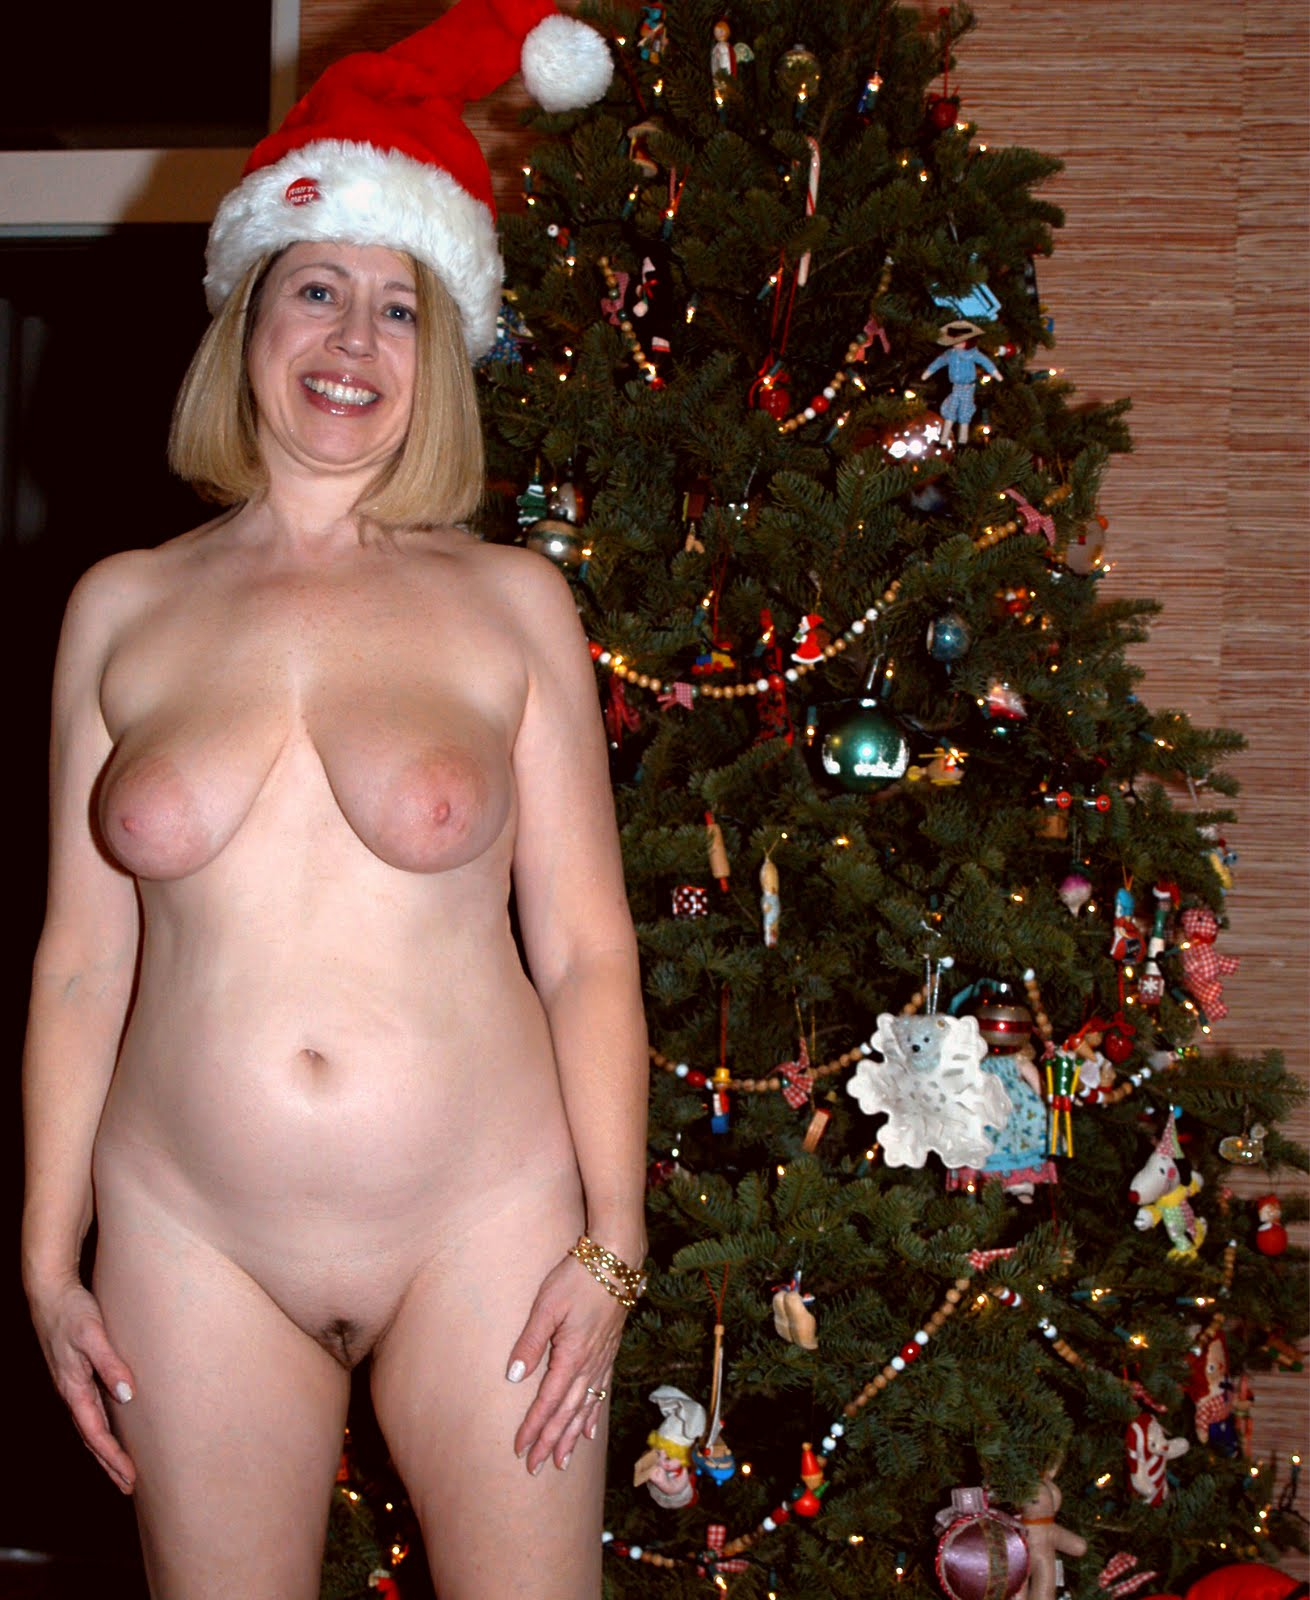 Kinky naked christmas pics porncraft galleries